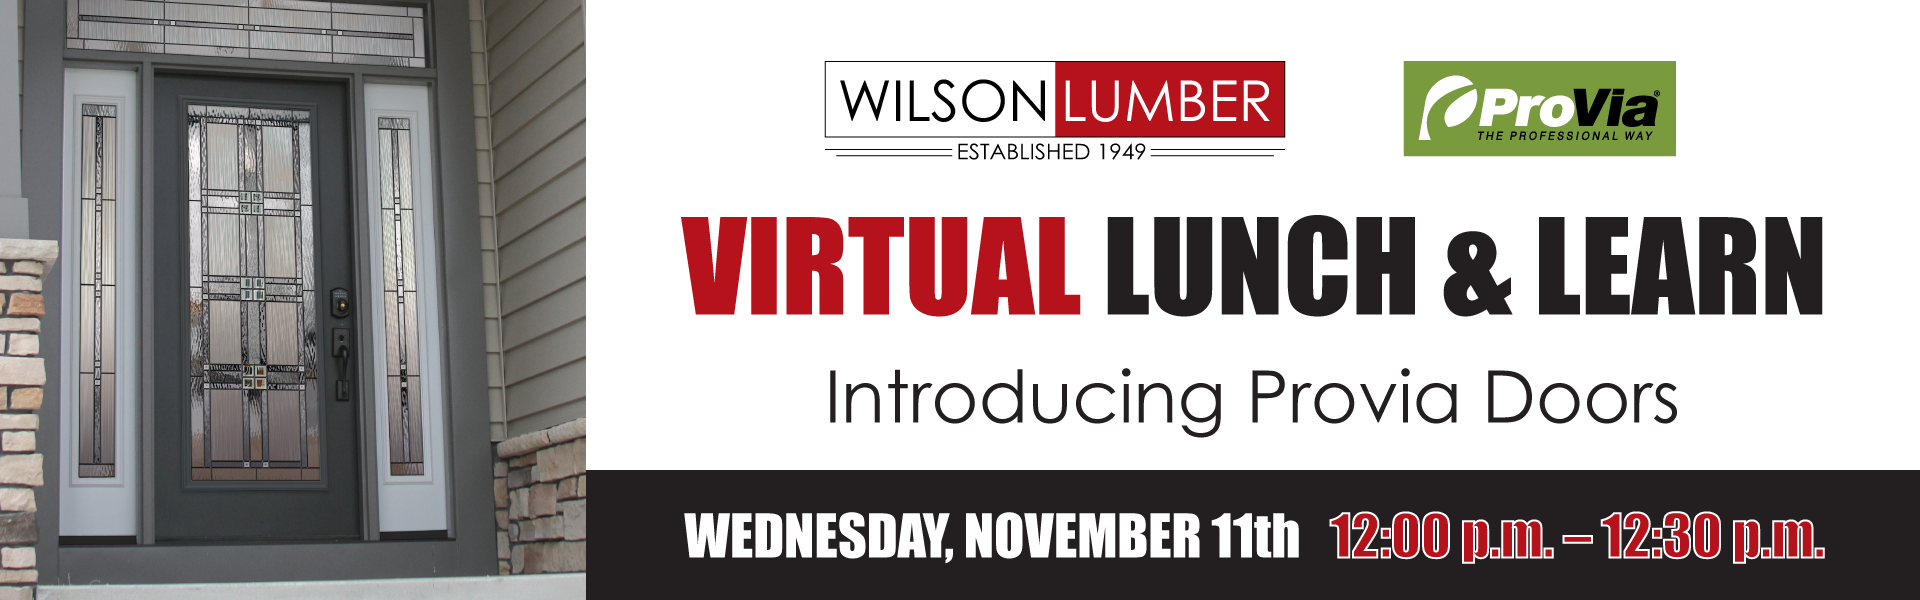 Virtual Lunch Wilson Lumber